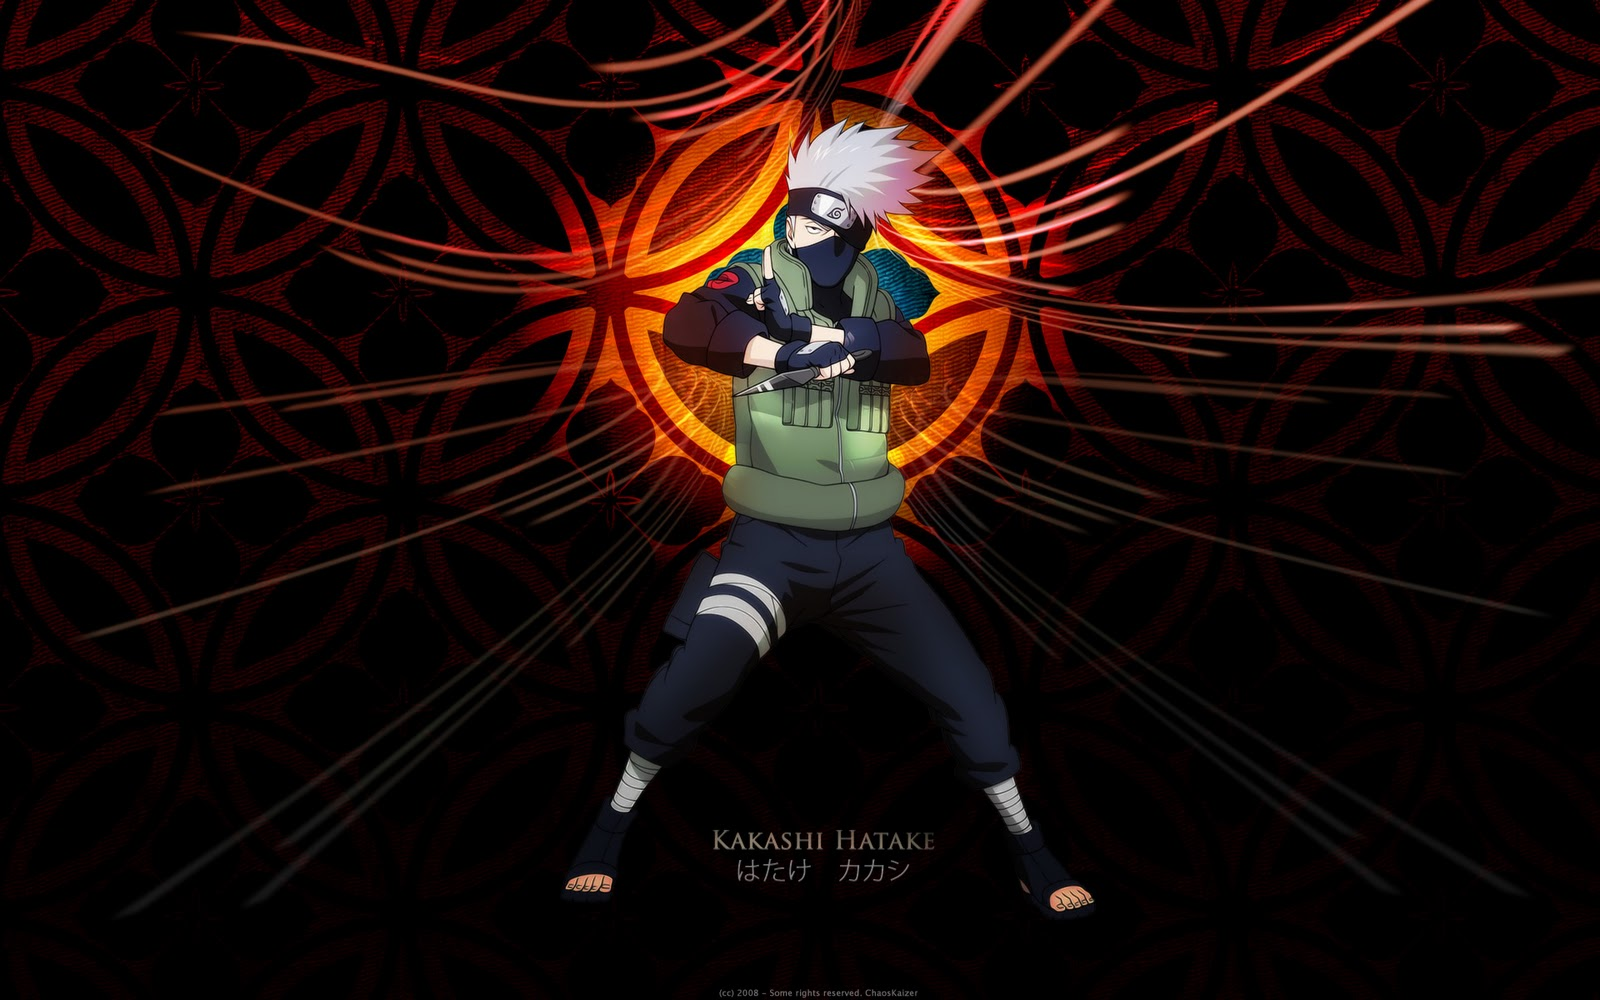 Bien connu naruto pictures hd JT34